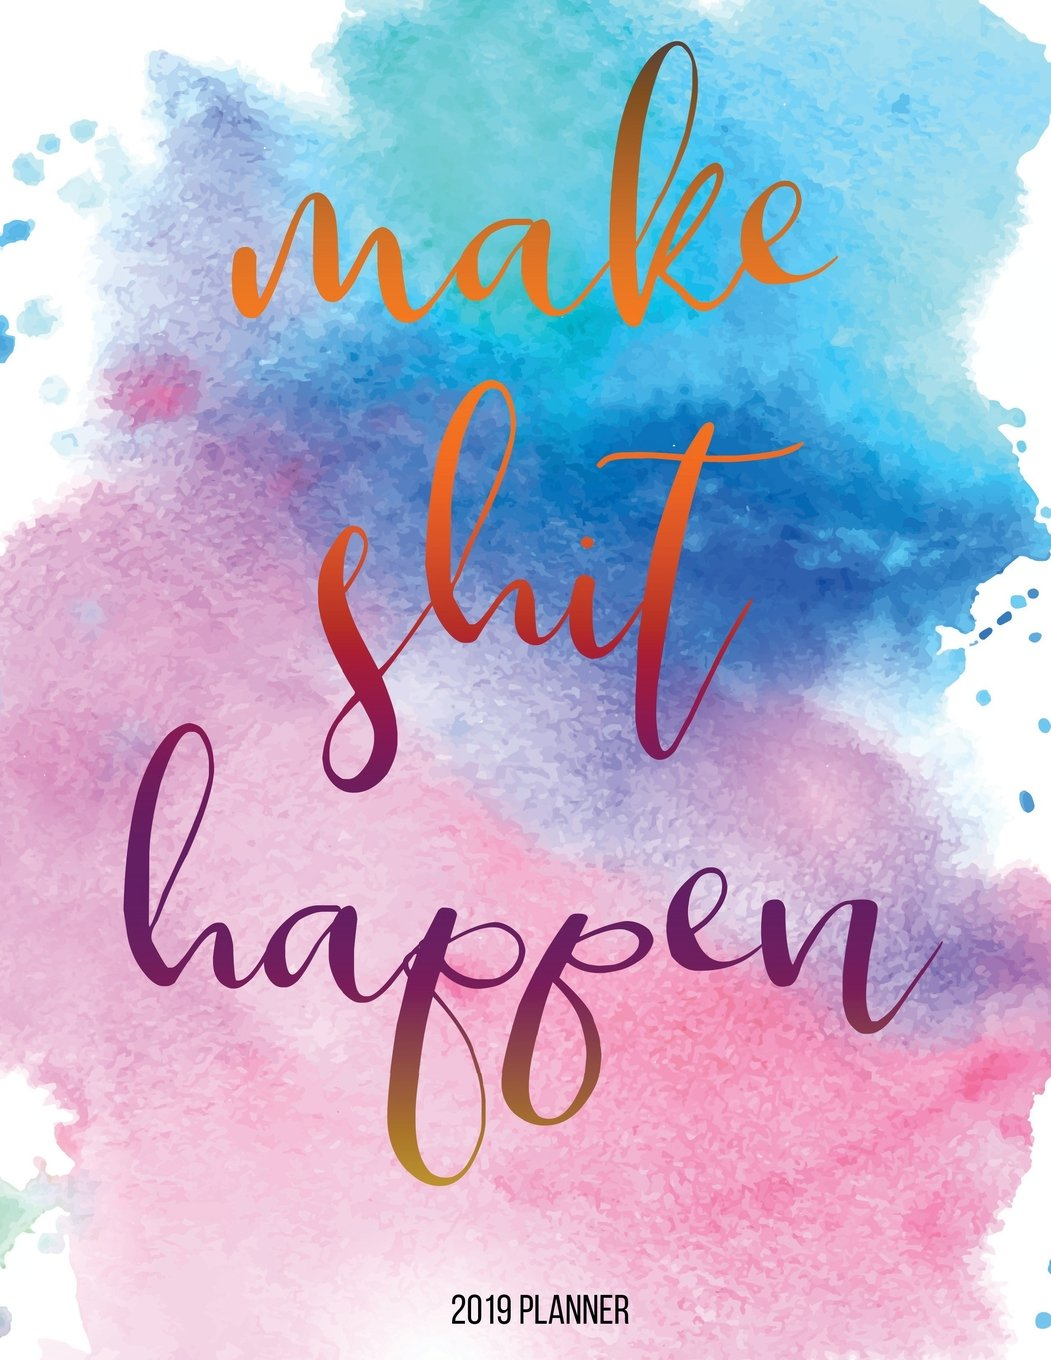 2019 Planner : Make Shit Happen: Year 2019 - 365 Daily - 52 Week journal Planner Calendar Schedule Organizer Appointment Notebook, Monthly Planner (2019 Planner Weekly And Monthly) (Volume 1) ebook